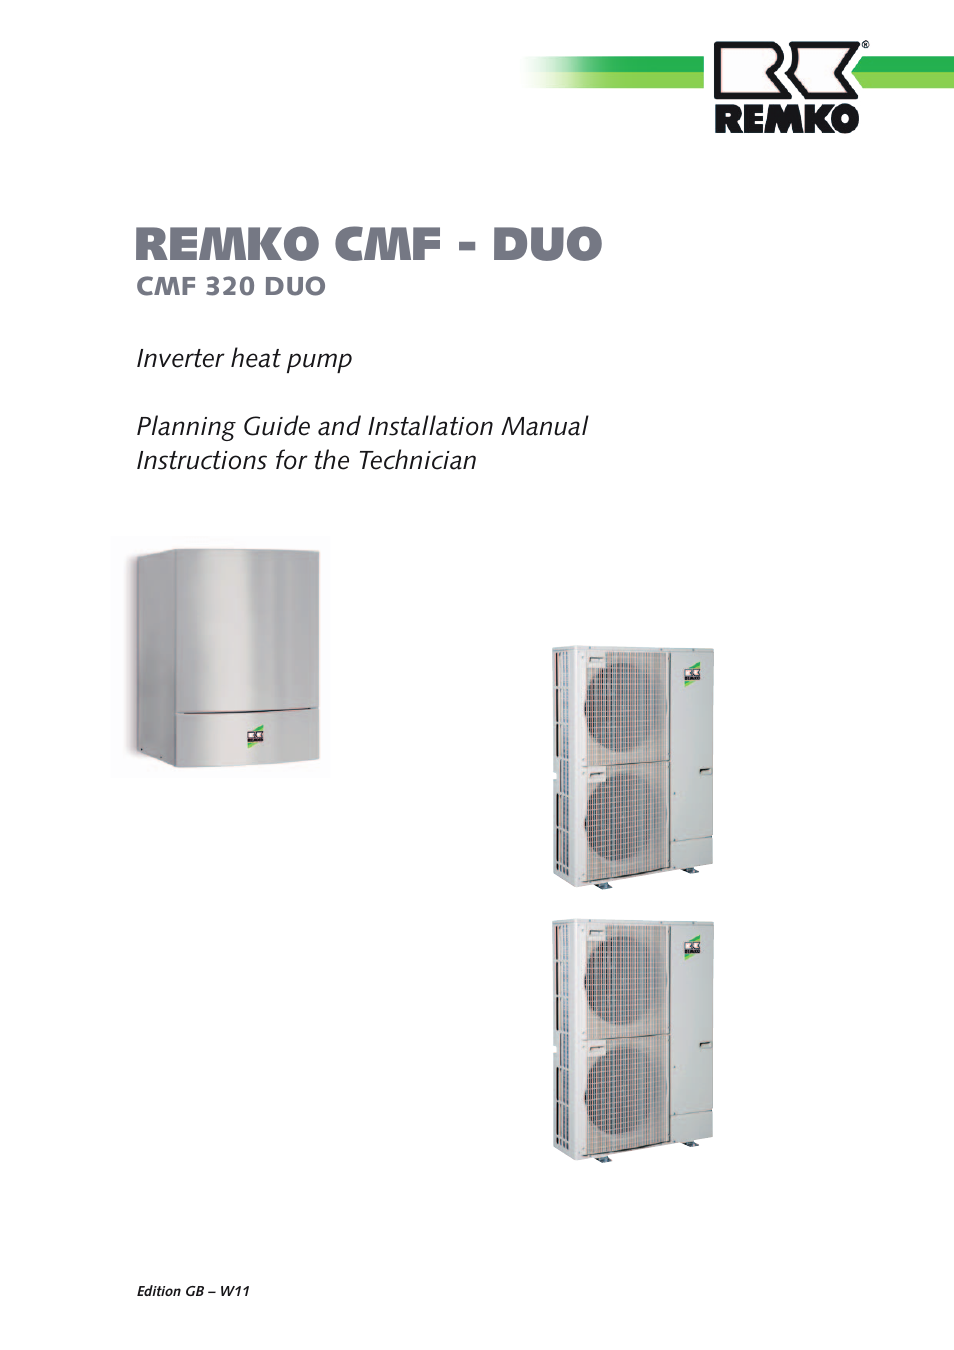 REMKO CMF 320 Duo User Manual | 60 pages